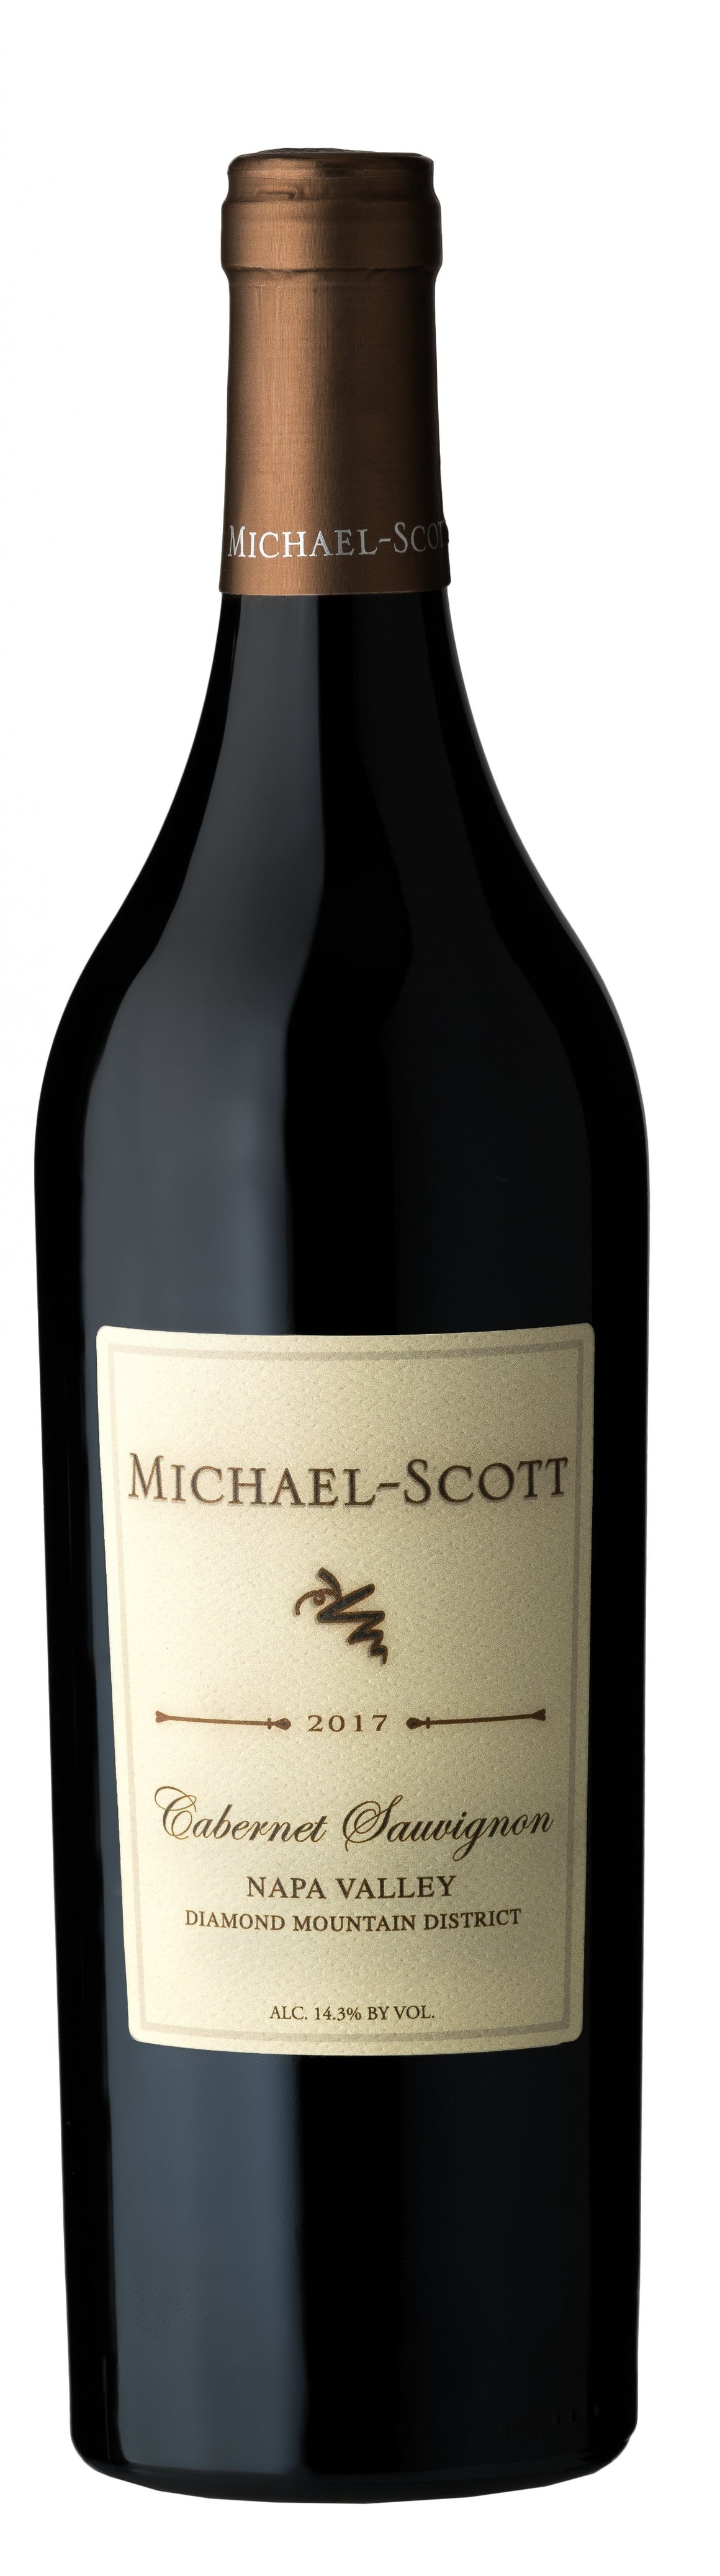 Michael-Scott 2017 Diamond Mountain-Napa Valley Cabernet Sauvignon